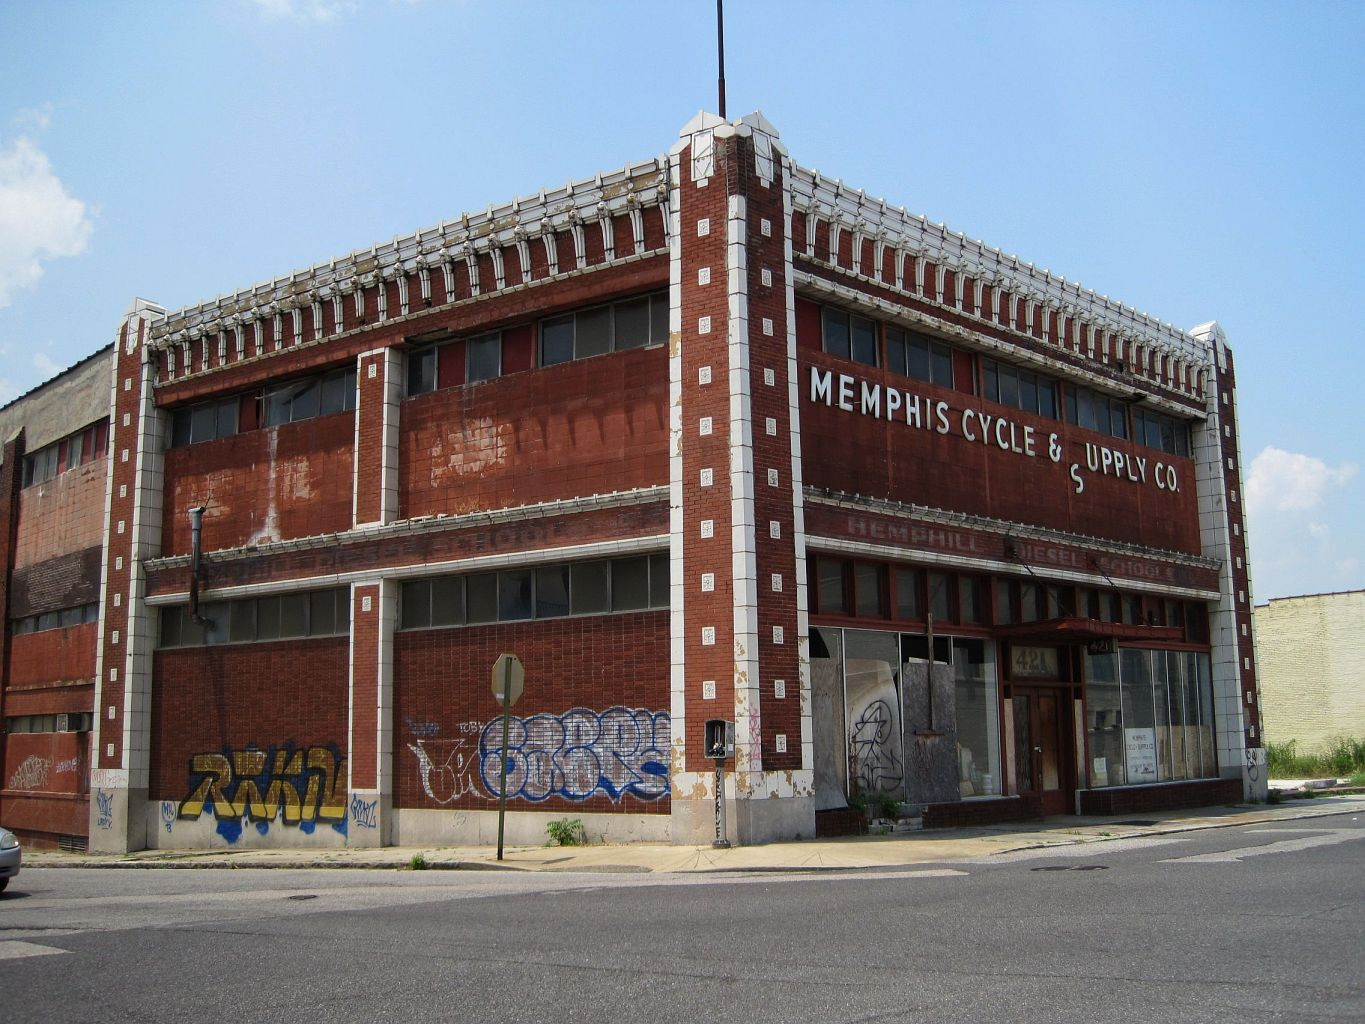 File:Memphis Cycle and Supply Co building Memphis TN 2013-07